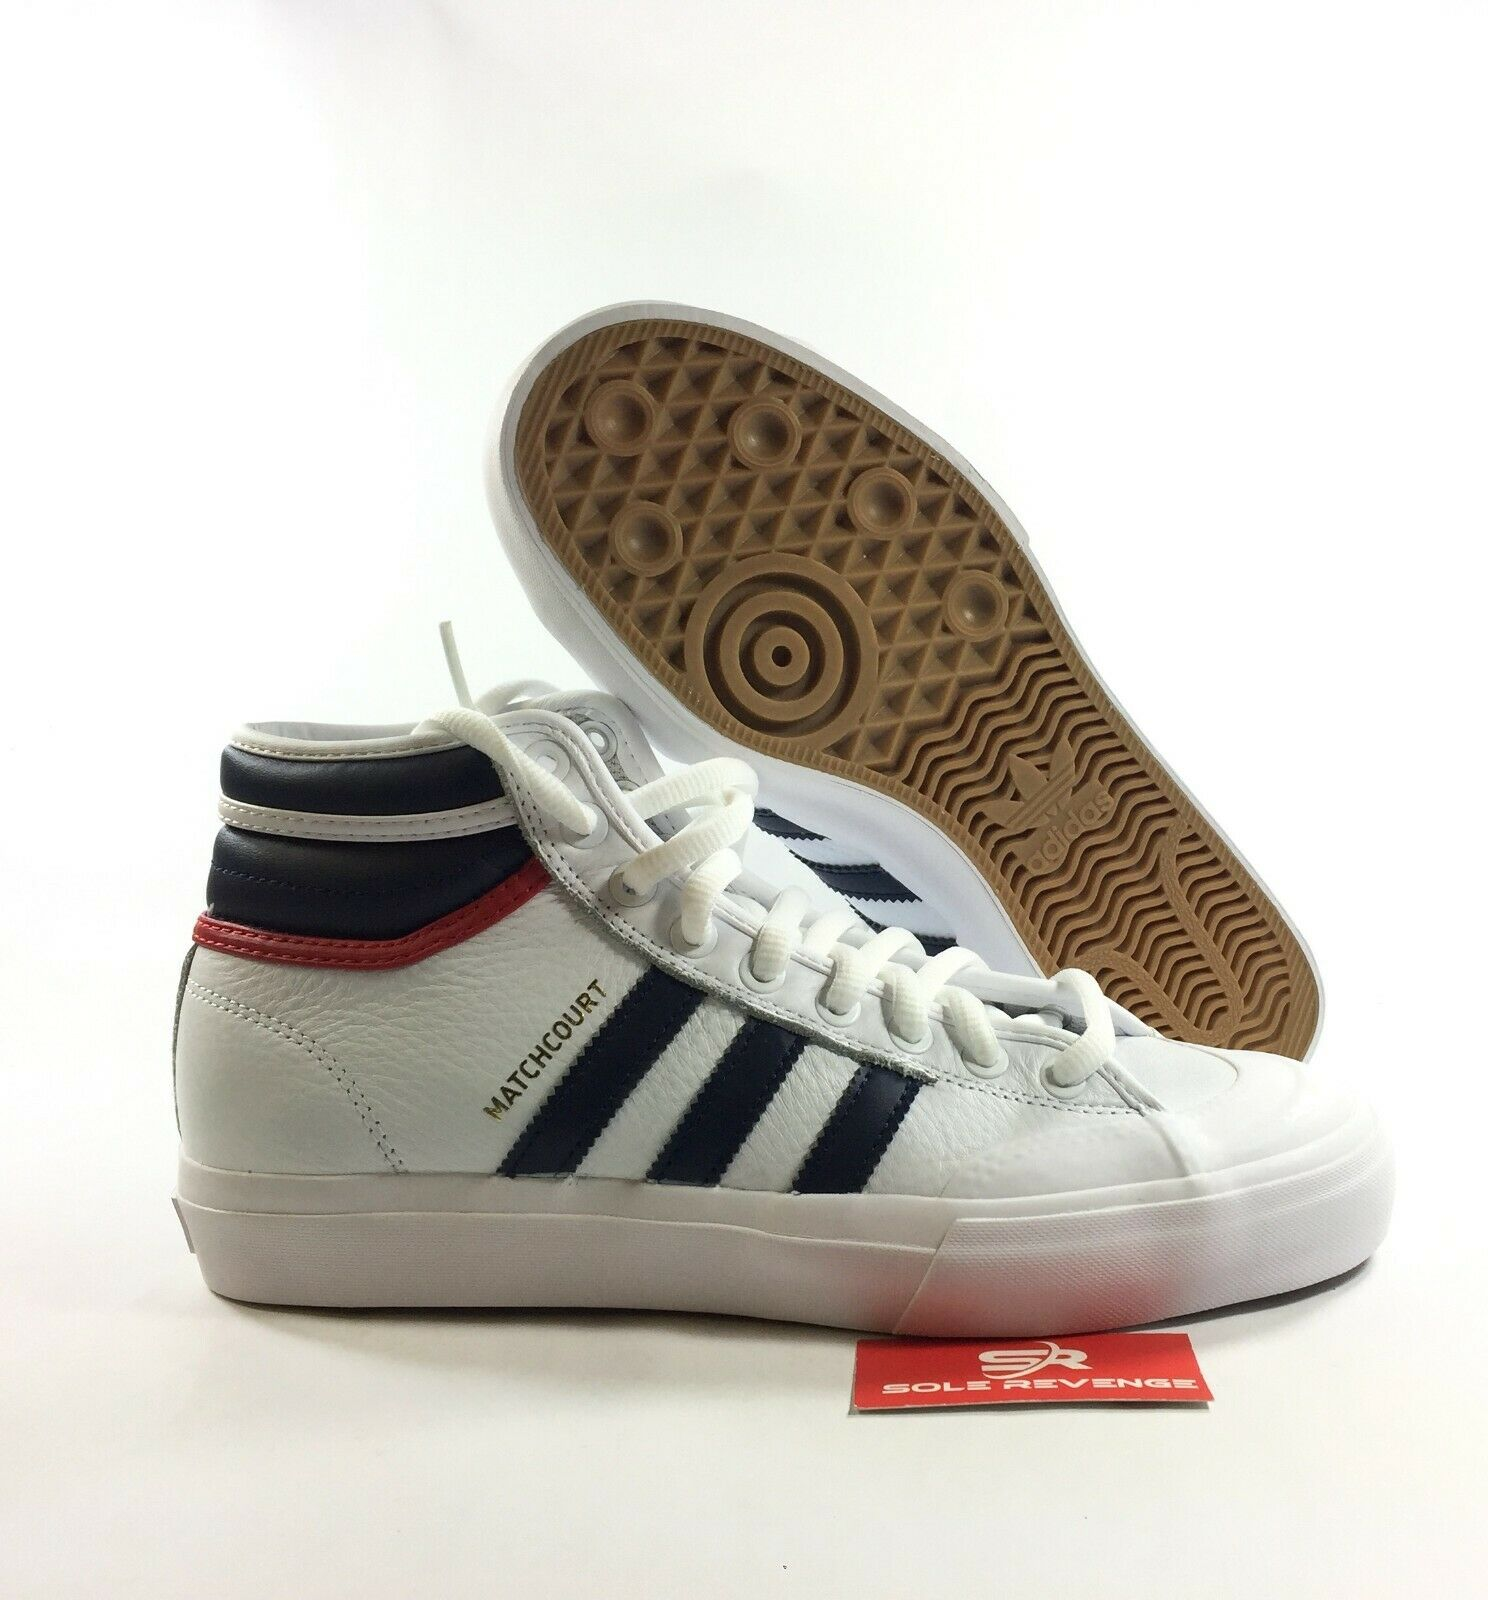 NEW adidas Originals MATCHCOURT HIGH RX2 SHOES White Navy Red BY4136 x1